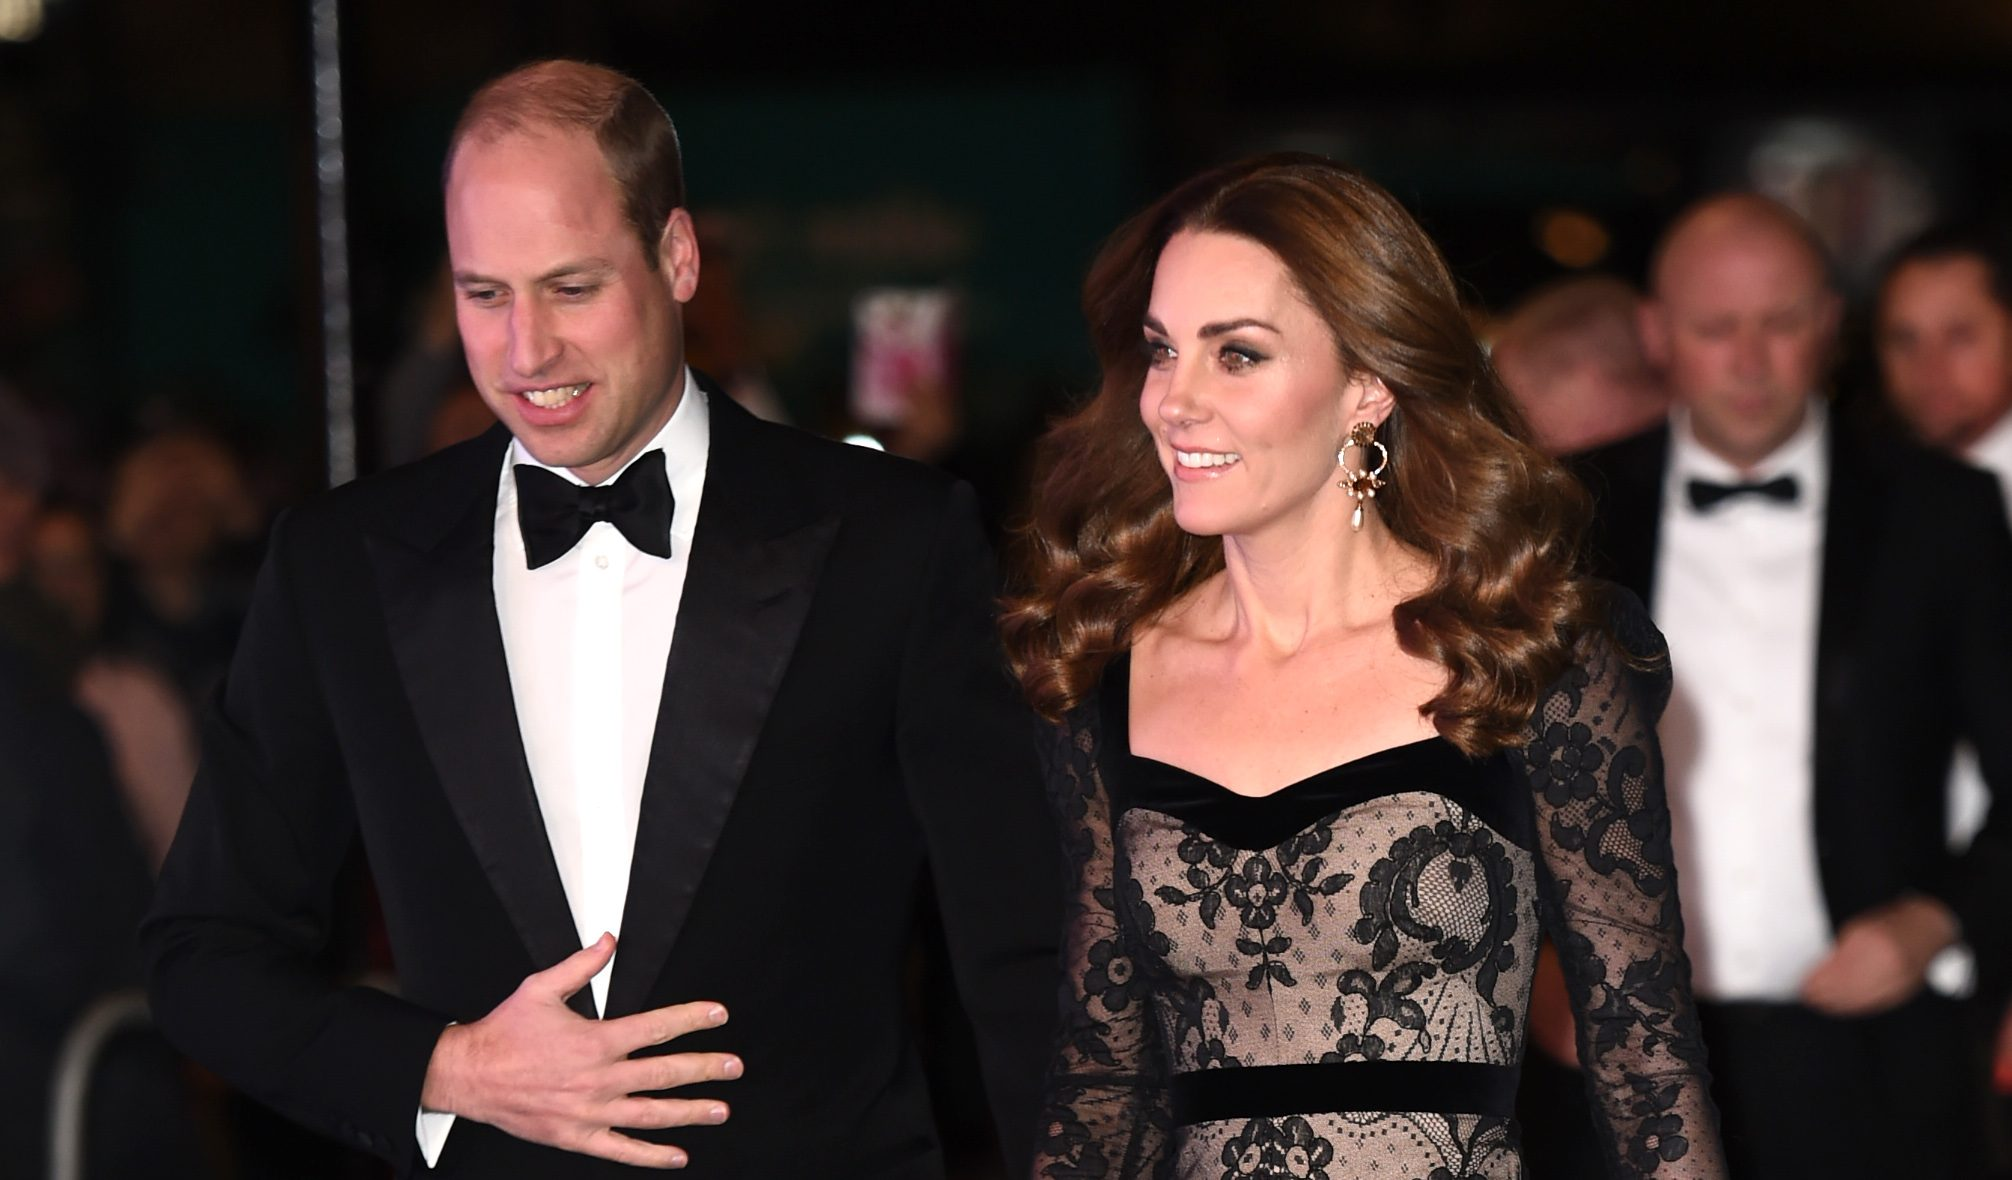 Prince William and Kate Middleton to 'make big announcement' over Christmas